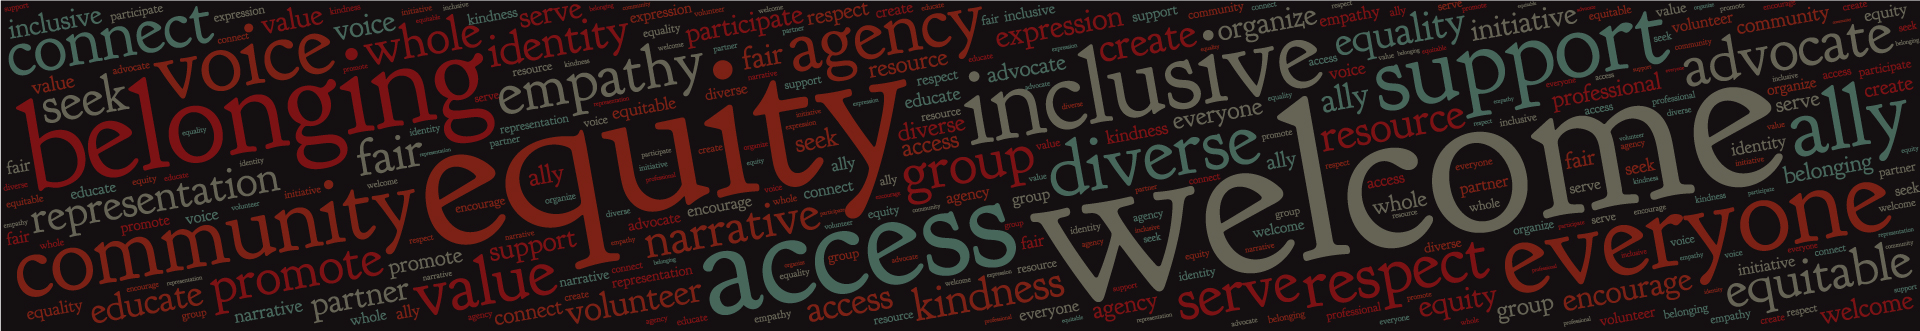 EFA Diversity Initiative Mission Statement